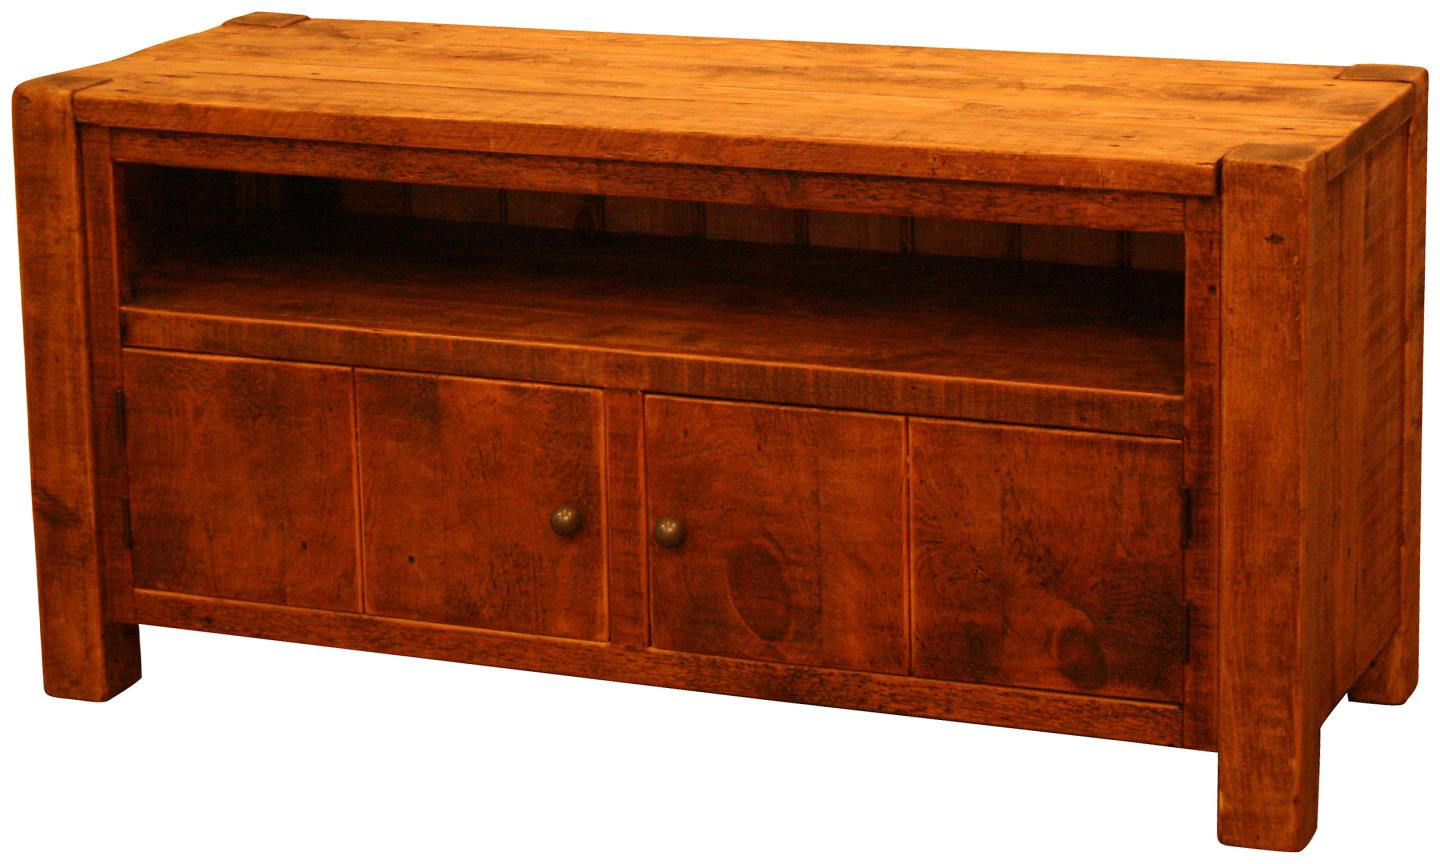 Cargo Large TV Cabinet with Doors - Vintage & Reclaimed Furniture ...